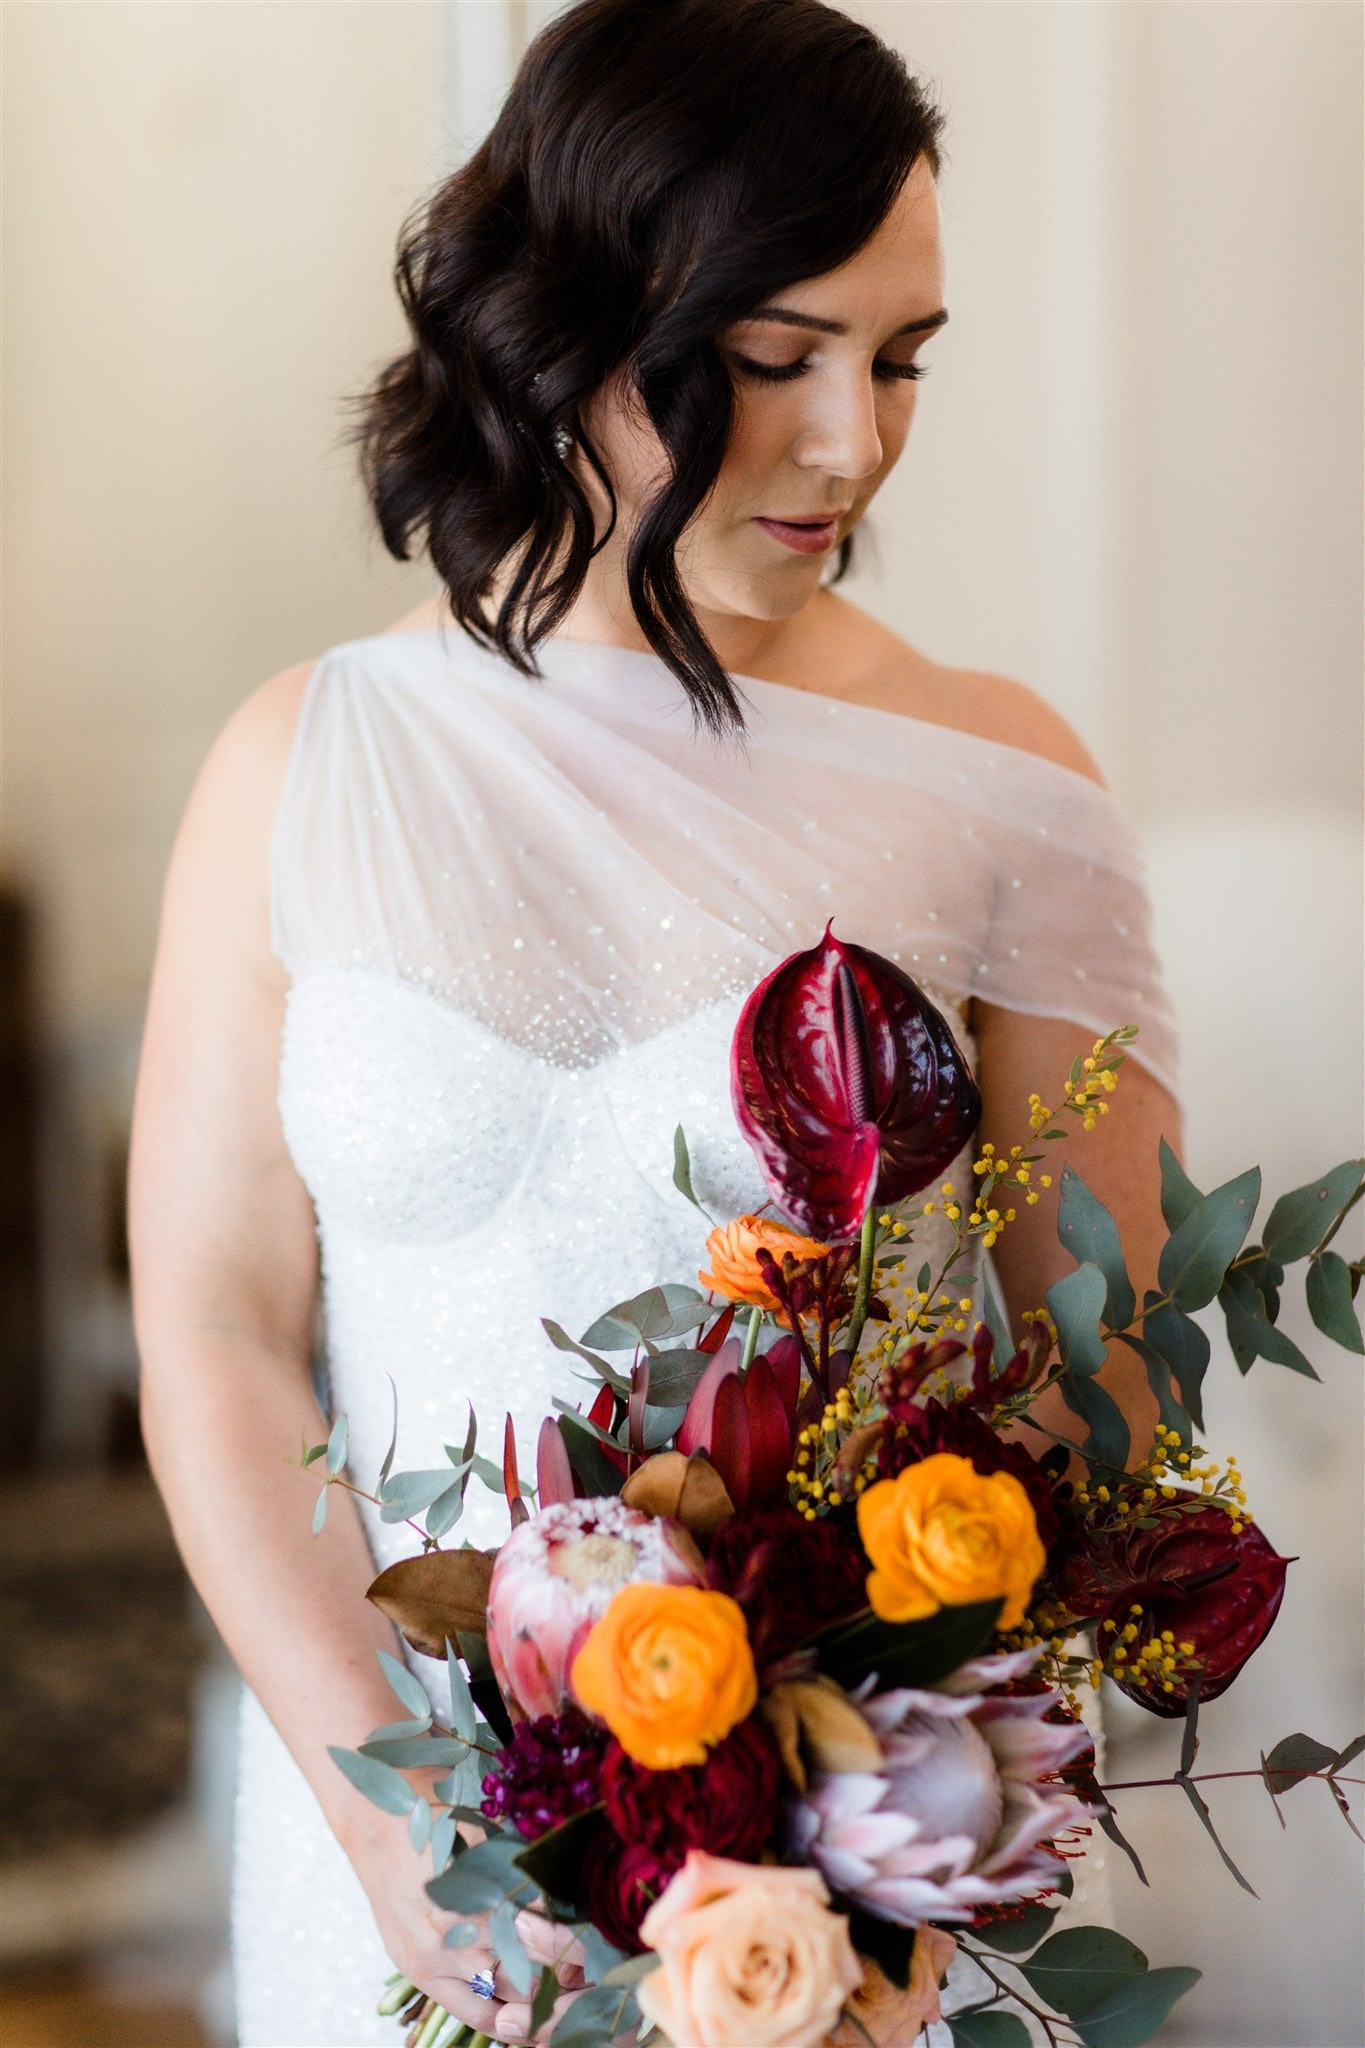 Bride holding bouquet looking away thoughtfully